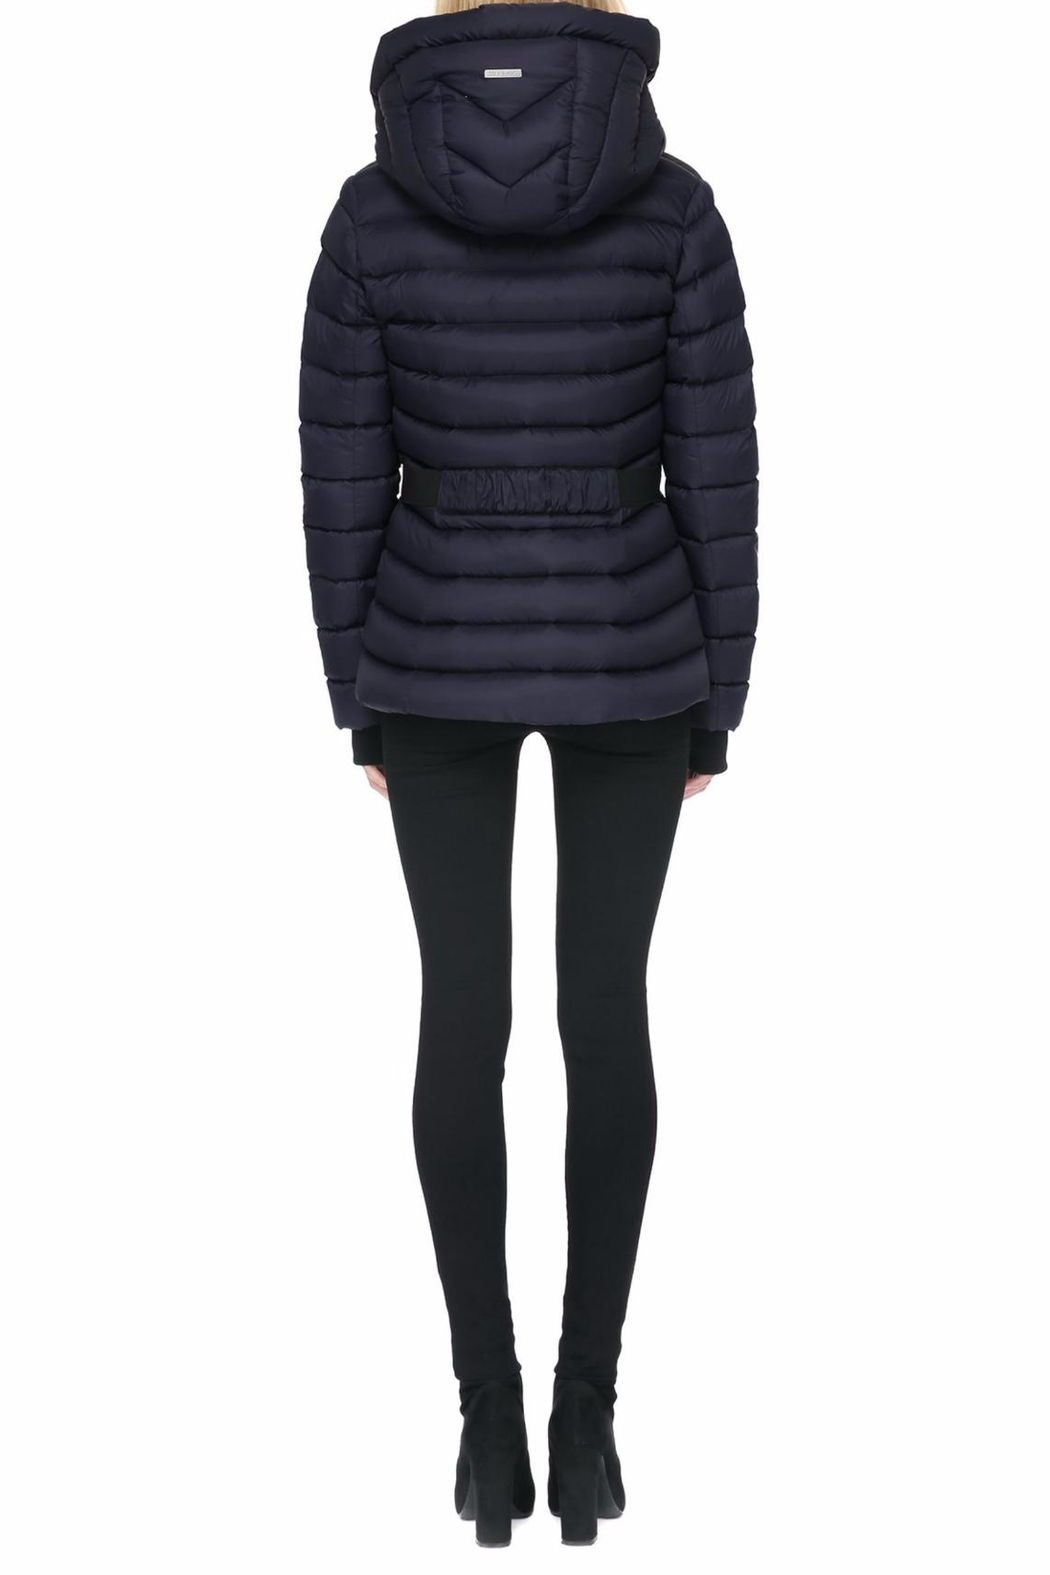 Soia & Kyo Charlise Light Down Jacket - Back Cropped Image